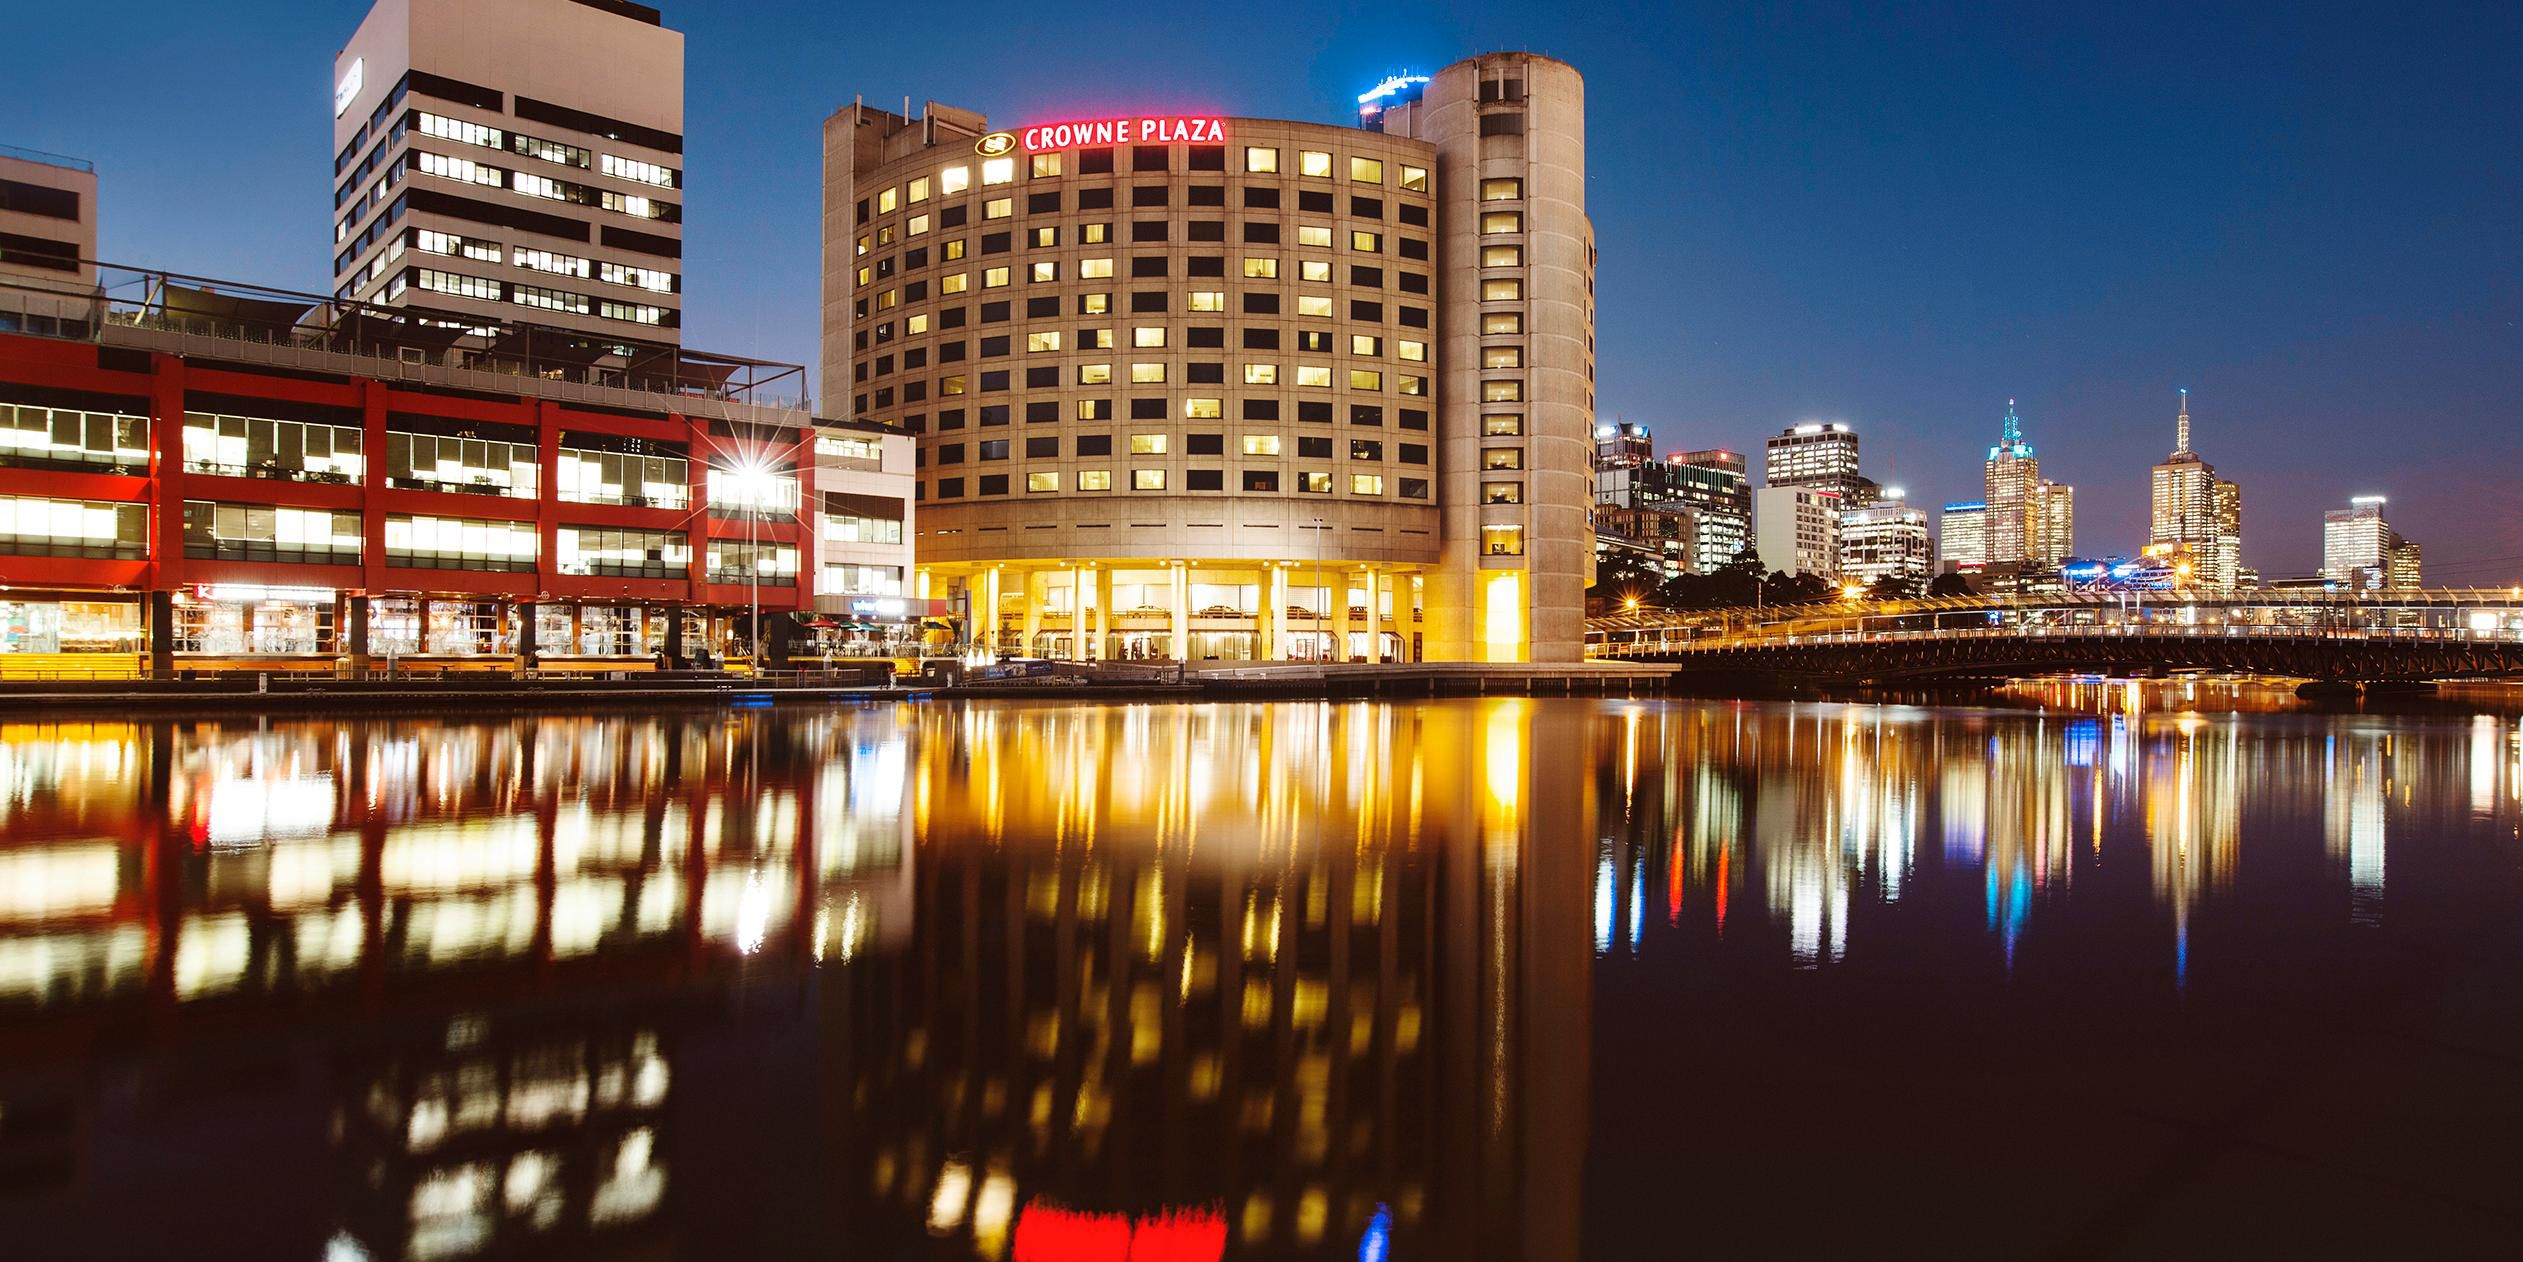 Hotels in melbourne near crown casino wolf run slot machines download